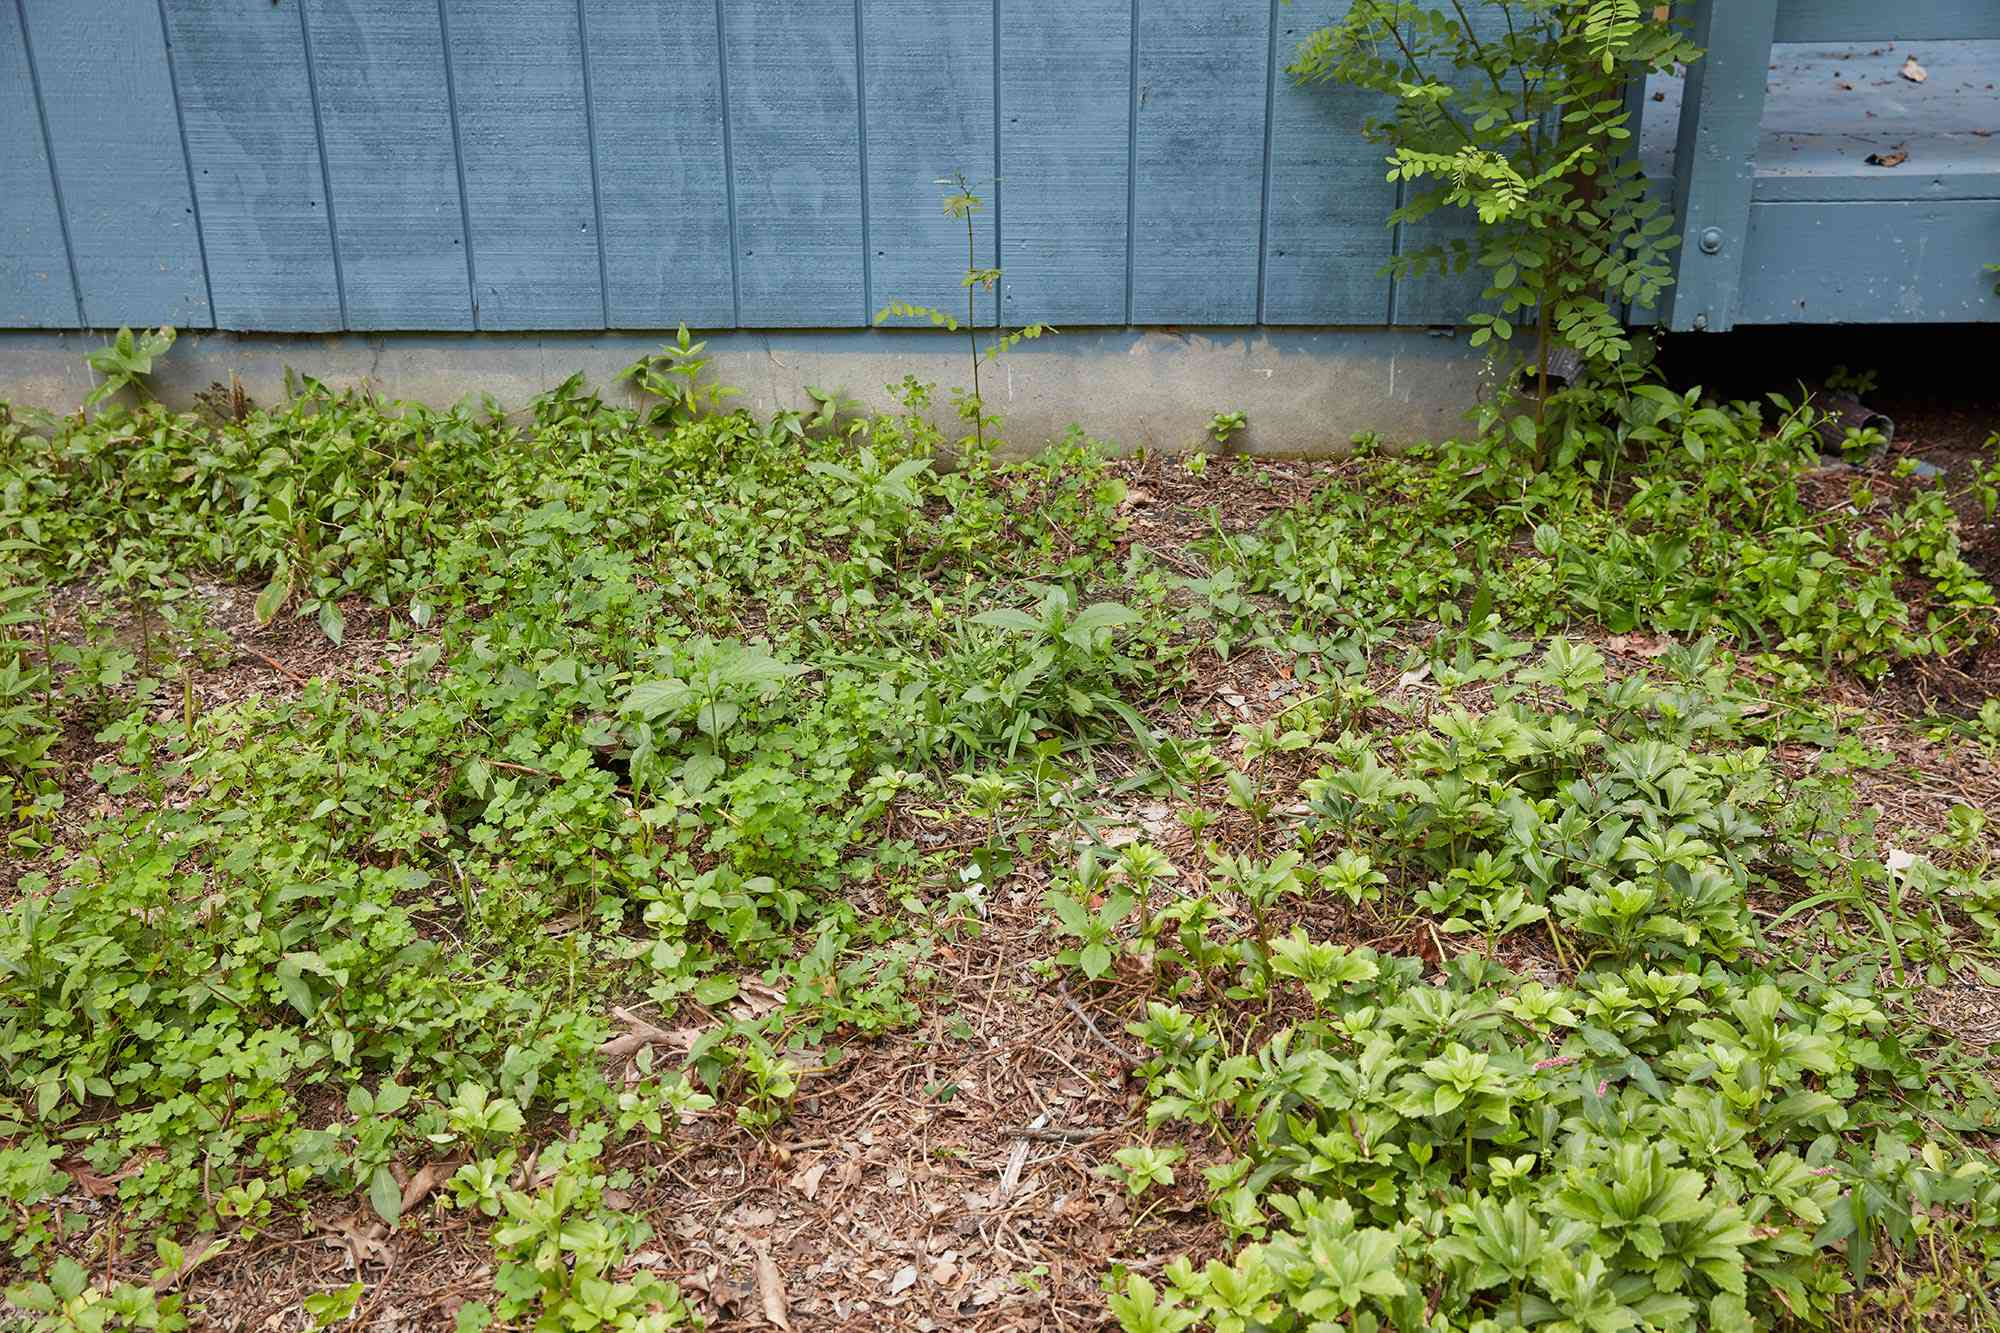 Area with poison ivy inspected on side of blue building